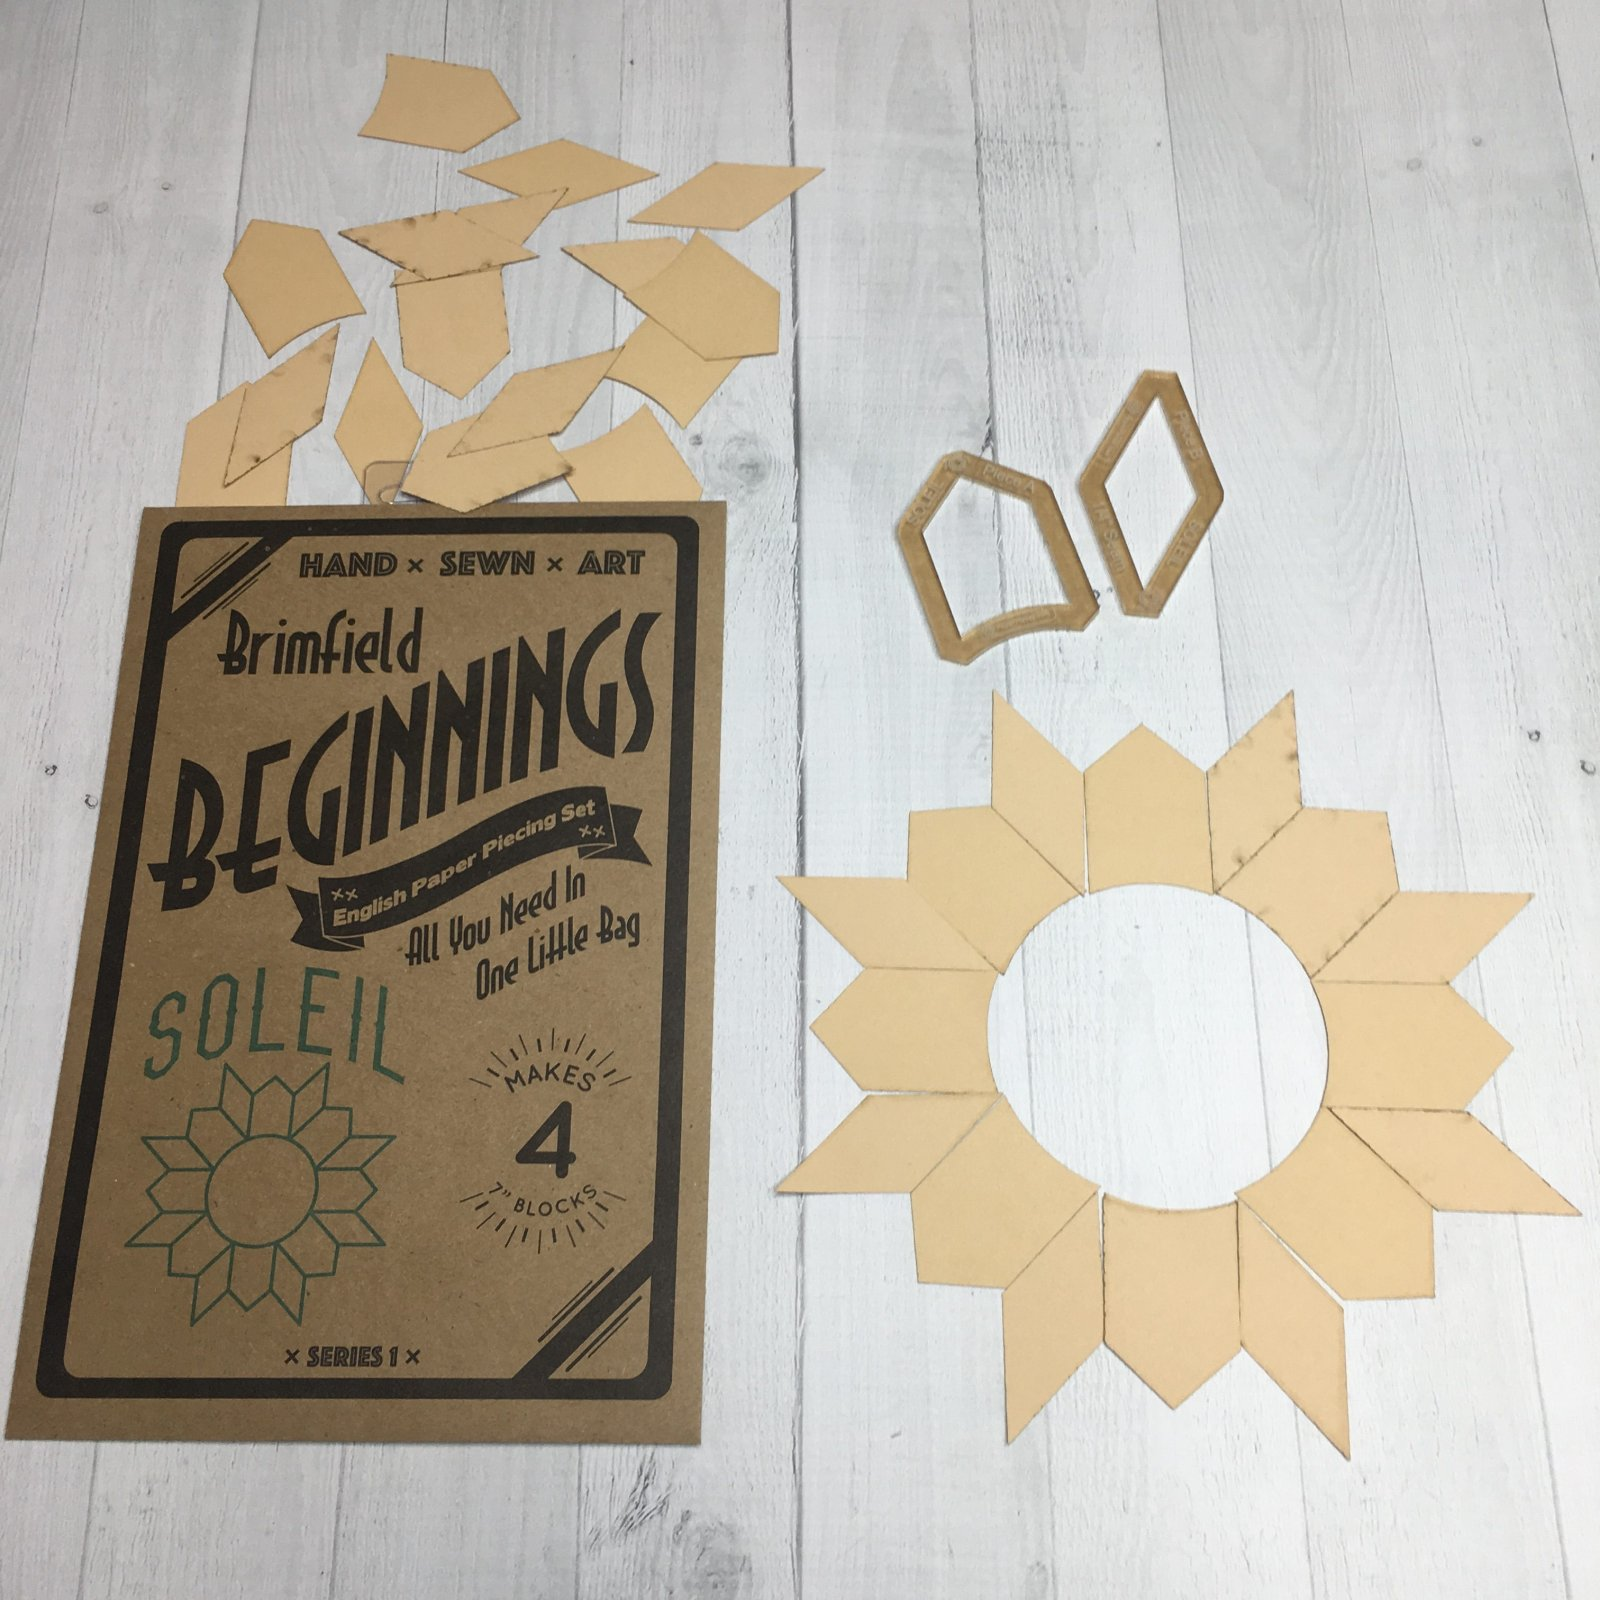 N- Soleil Brimfield Beginnings Papers/Acrylics/Pattern